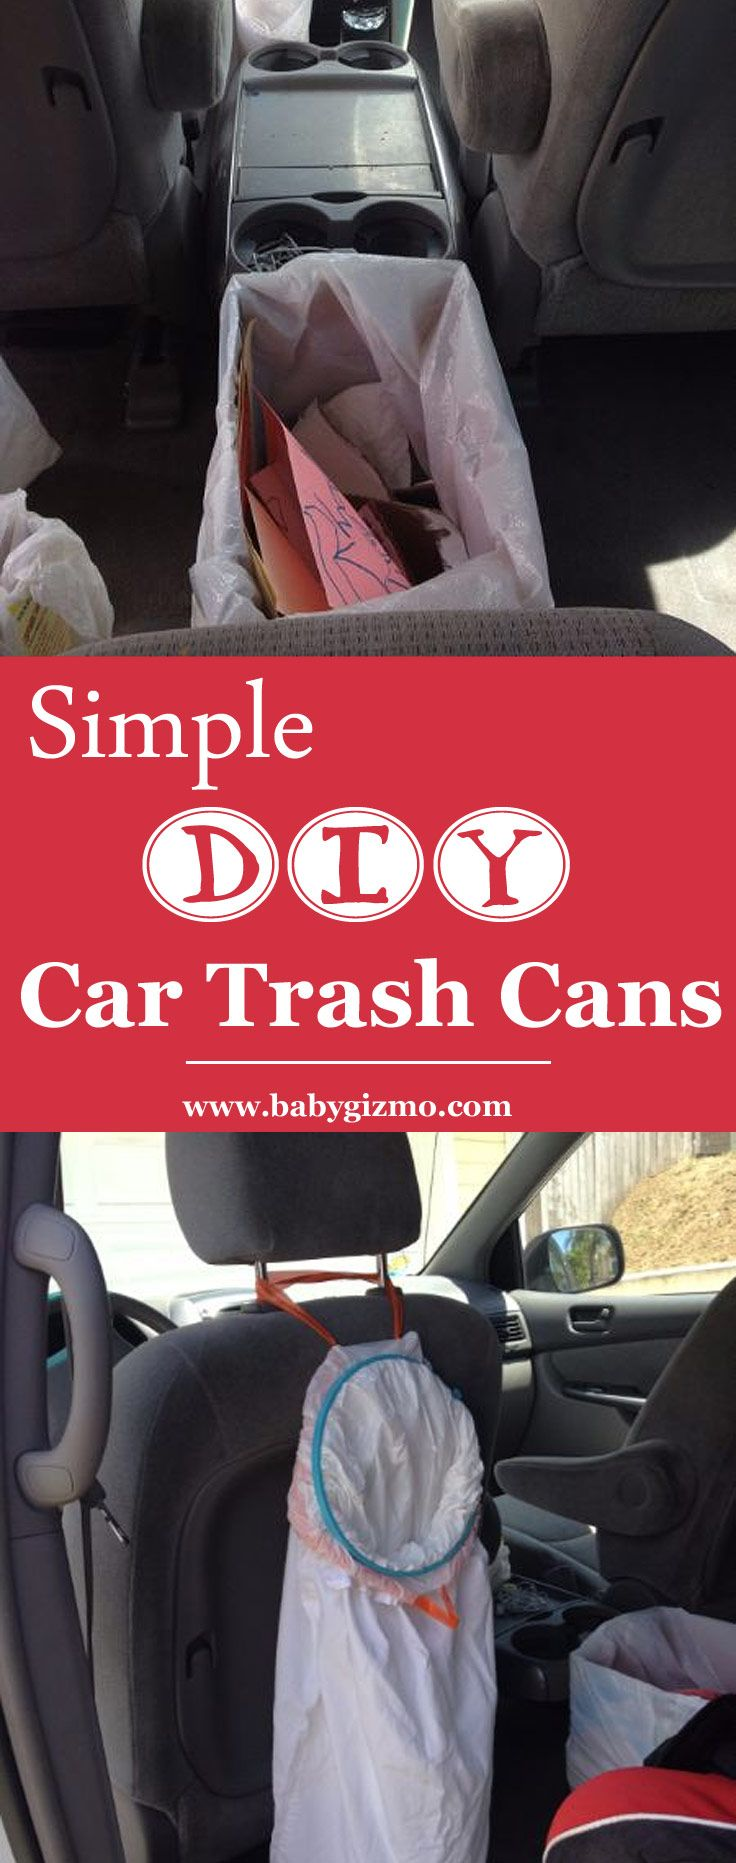 Simple, FREE, DIY Car Trash Can ideas to keep your vehicle clean and clutter-free! #DIY #car #parenting